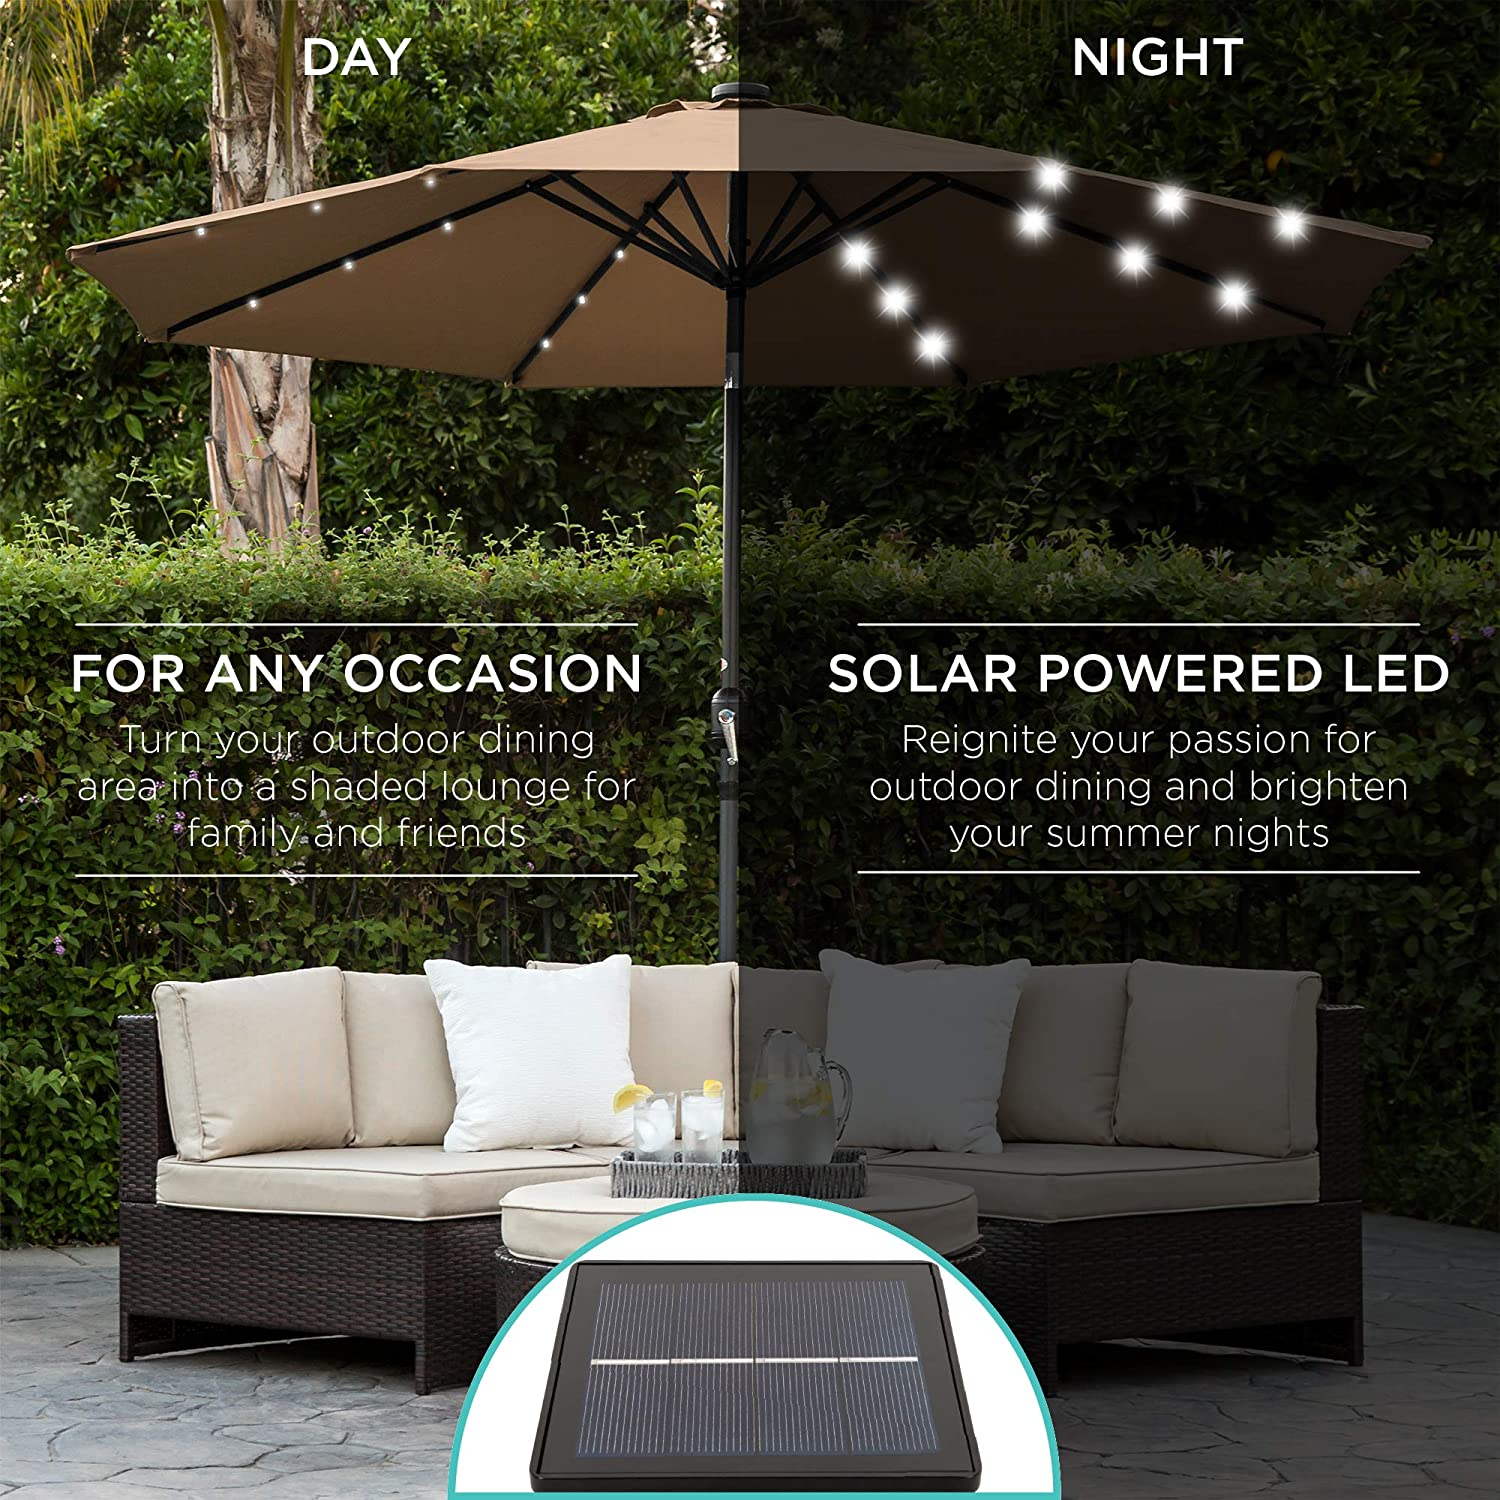 Large LED Lighted Patio Umbrella